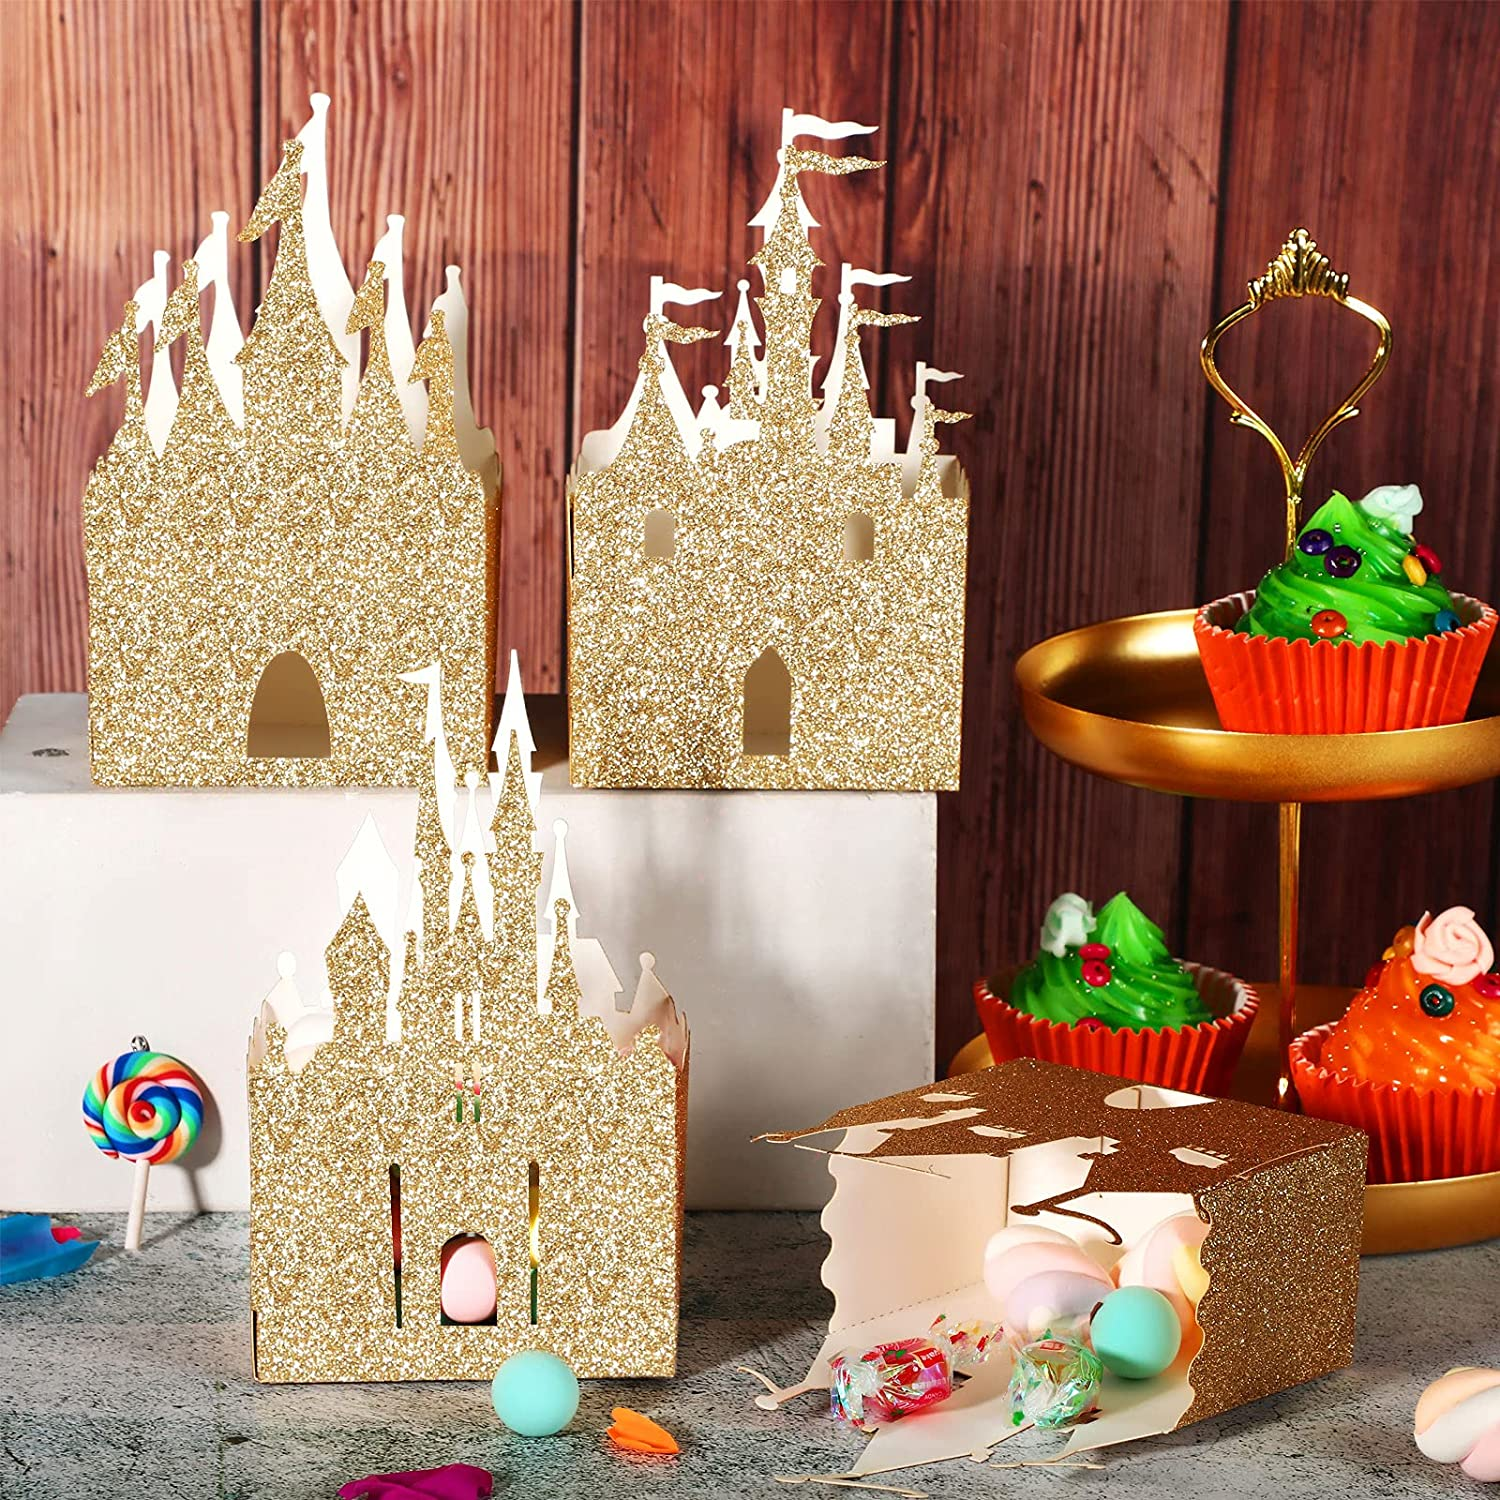 20 Pieces Princess Box Party Supplies Glitter Princess Party Box Castle Candy Box Gold Castle Party Favor Box Glitter Party Favor Boxes for Wedding Birthday Party Bridal Baby Shower Decoration